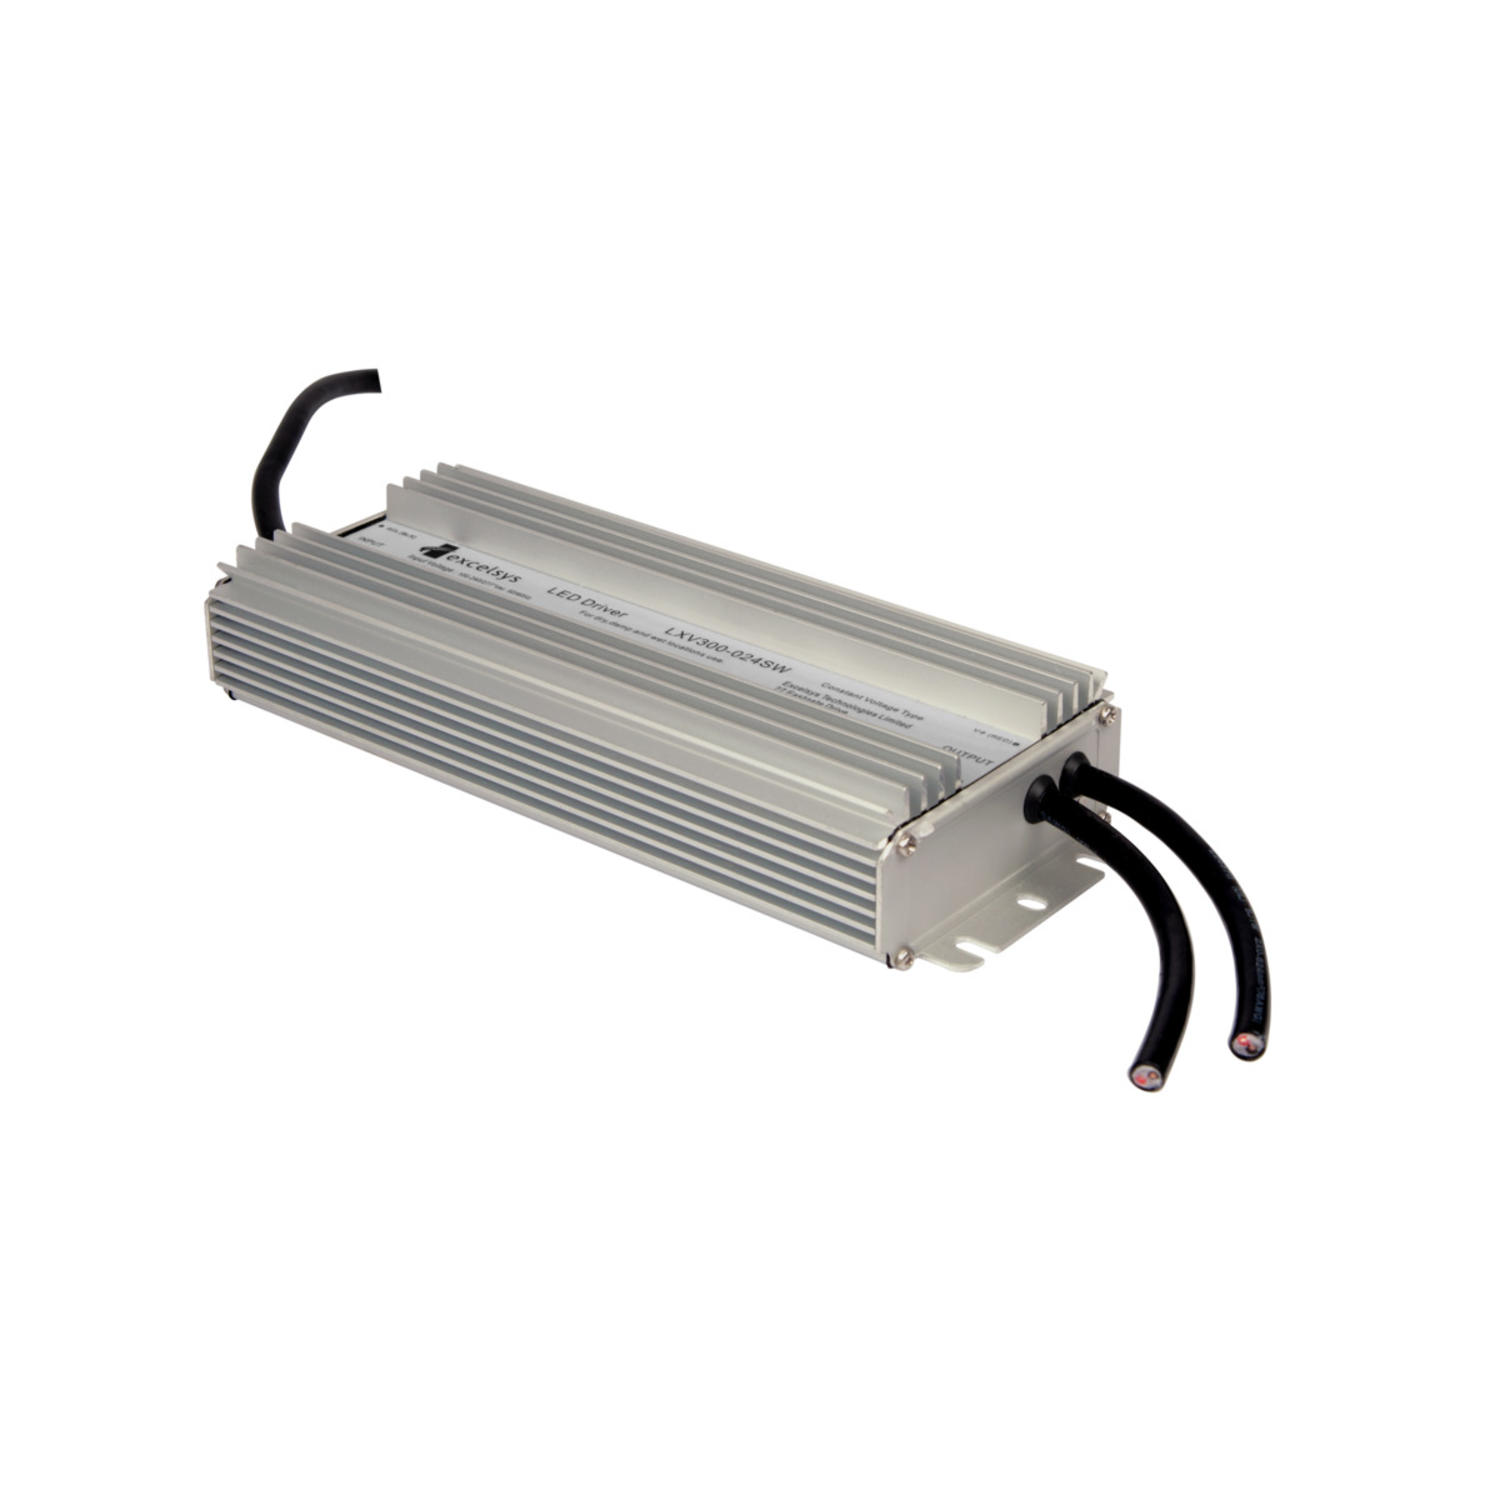 LED-trafo LXV 24VDC 300W IP67